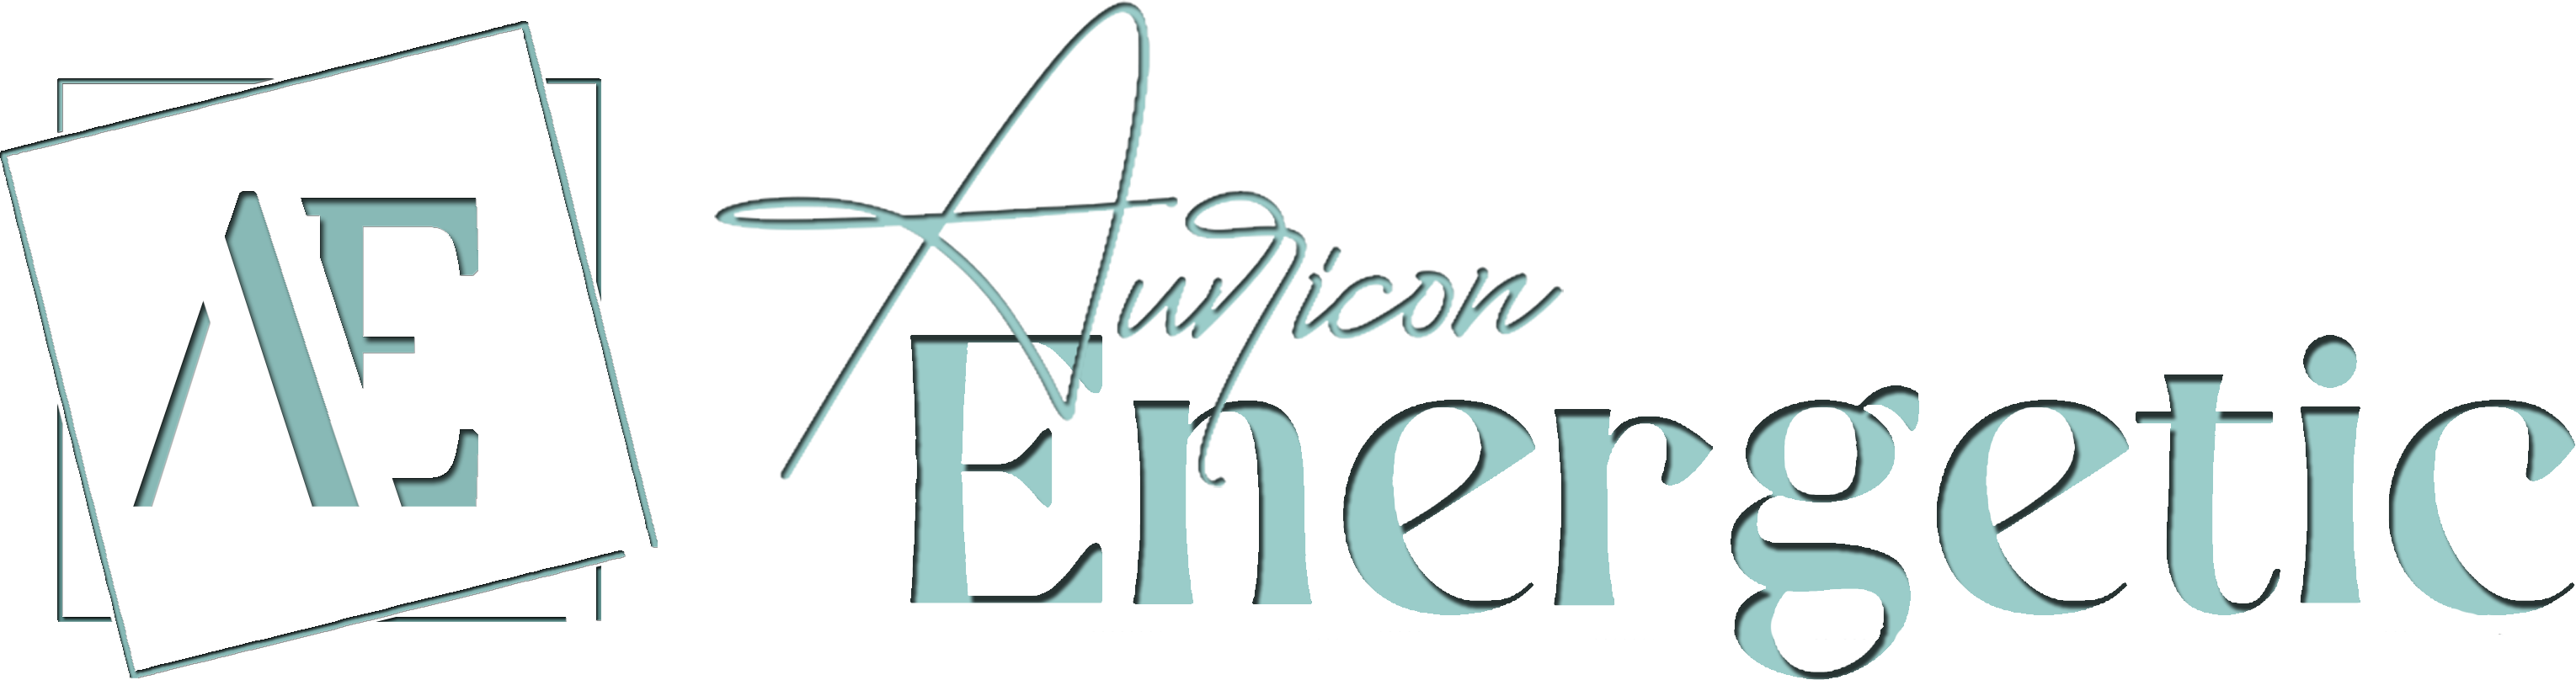 Auricon Energetic